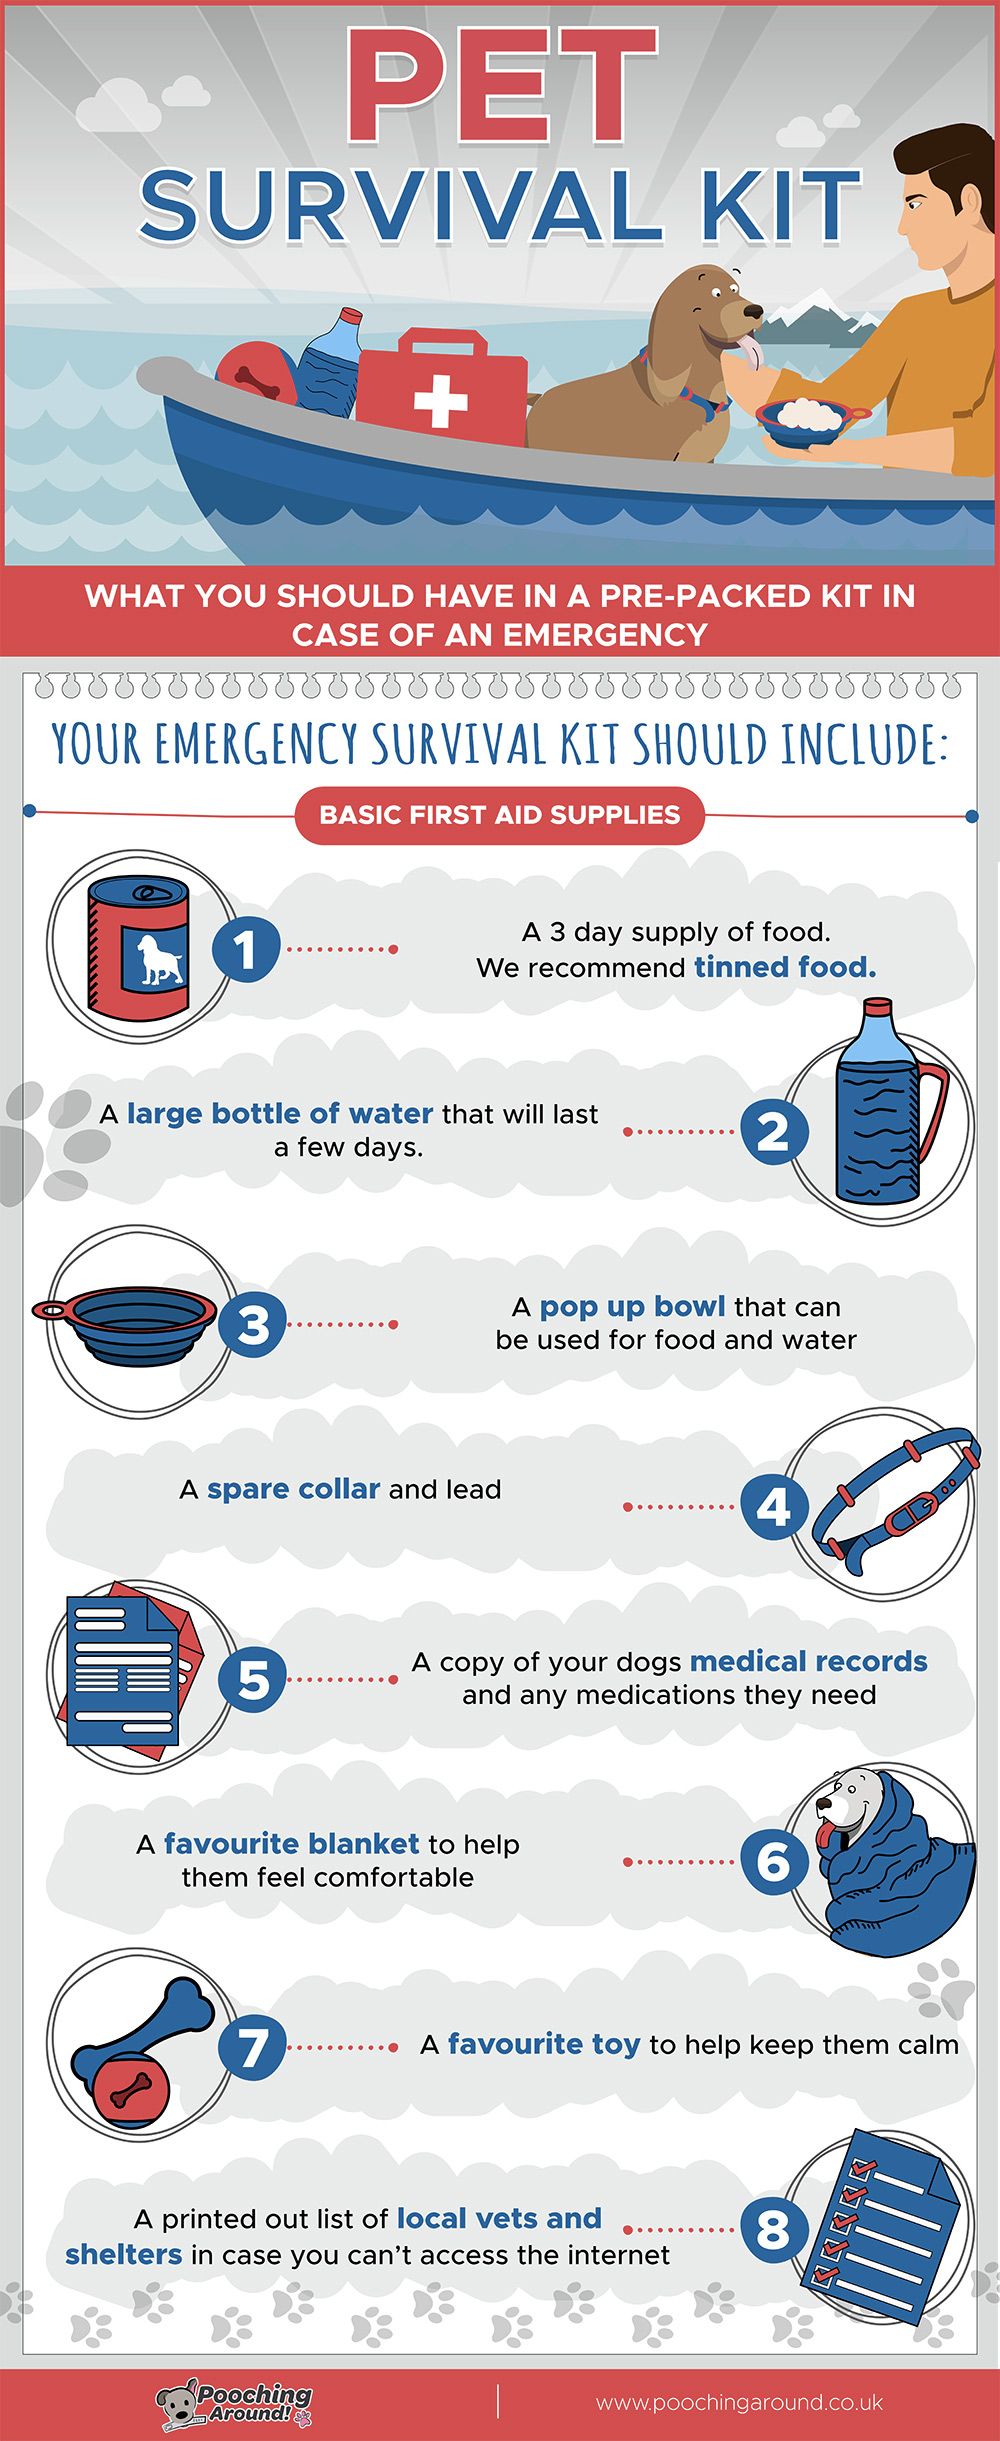 How to Prepare an Emergency Kit for Dogs